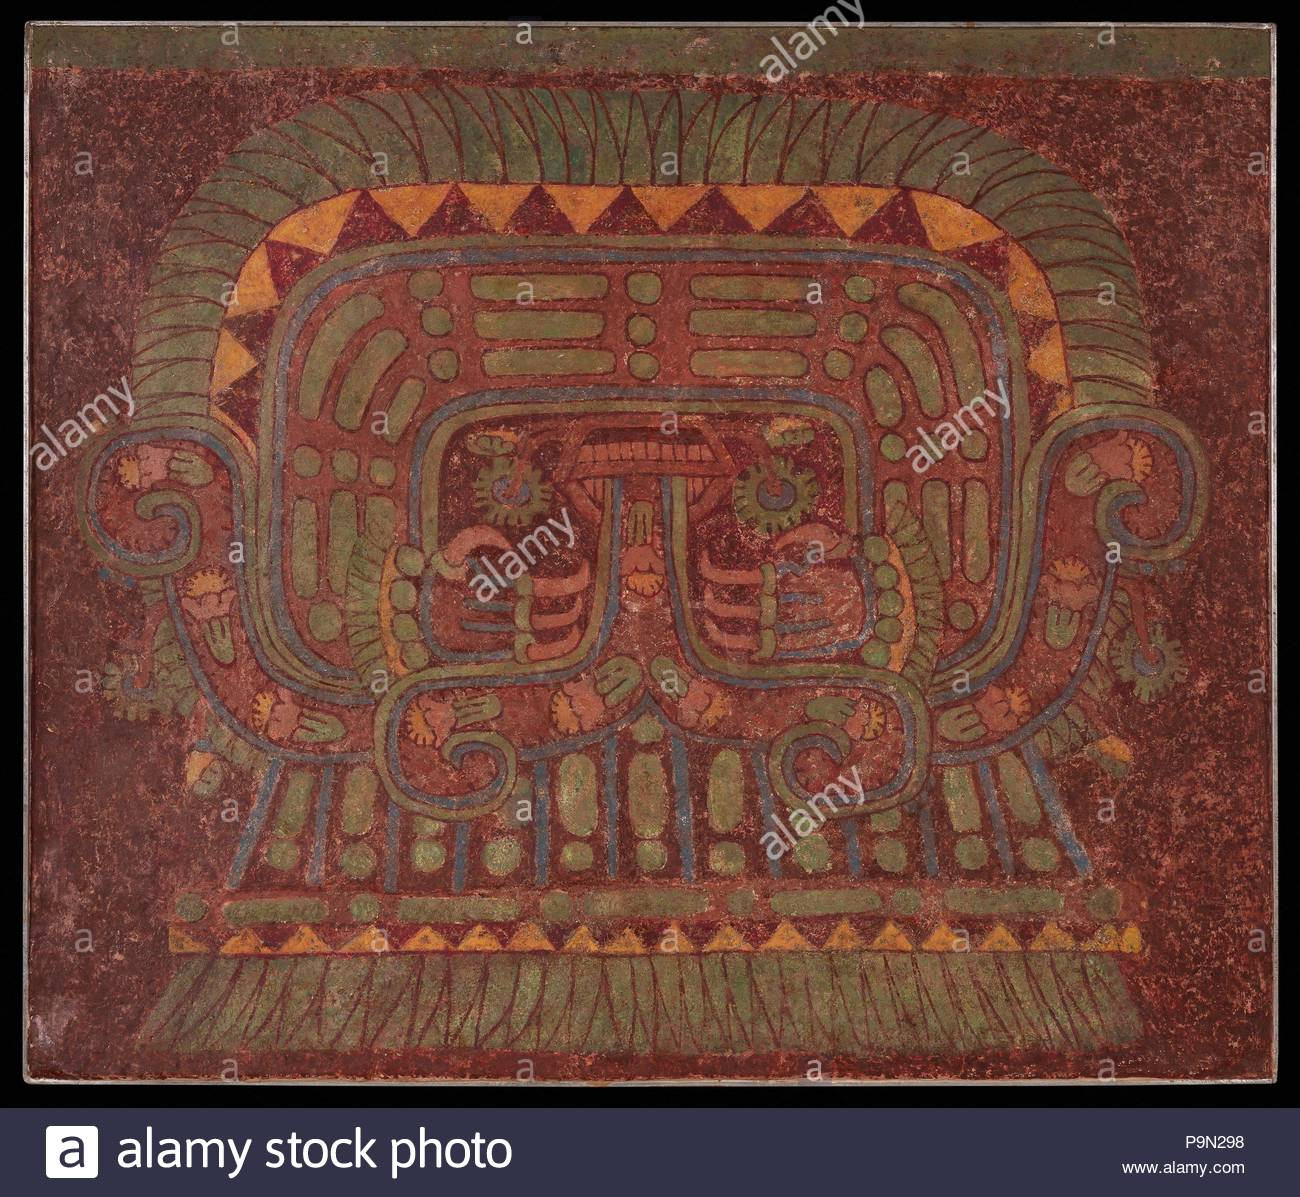 wall painting 650 750 mexico teotihuacan lime plaster paint h